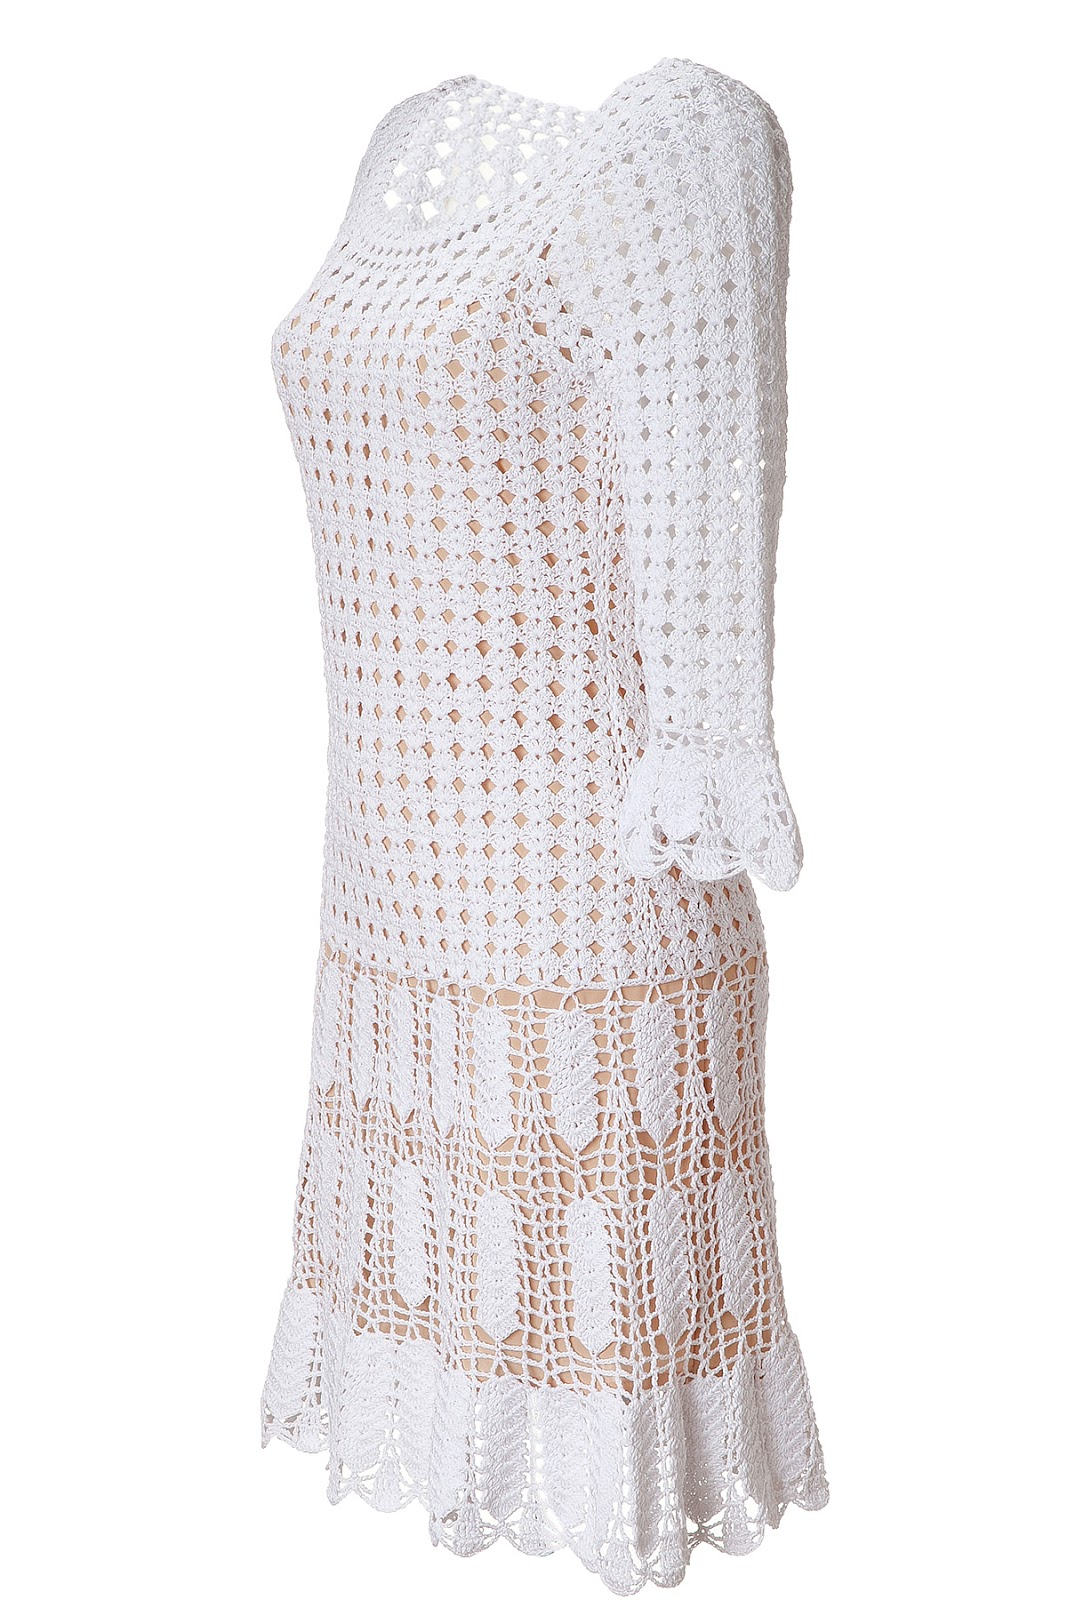 the woman in white: crochet dress